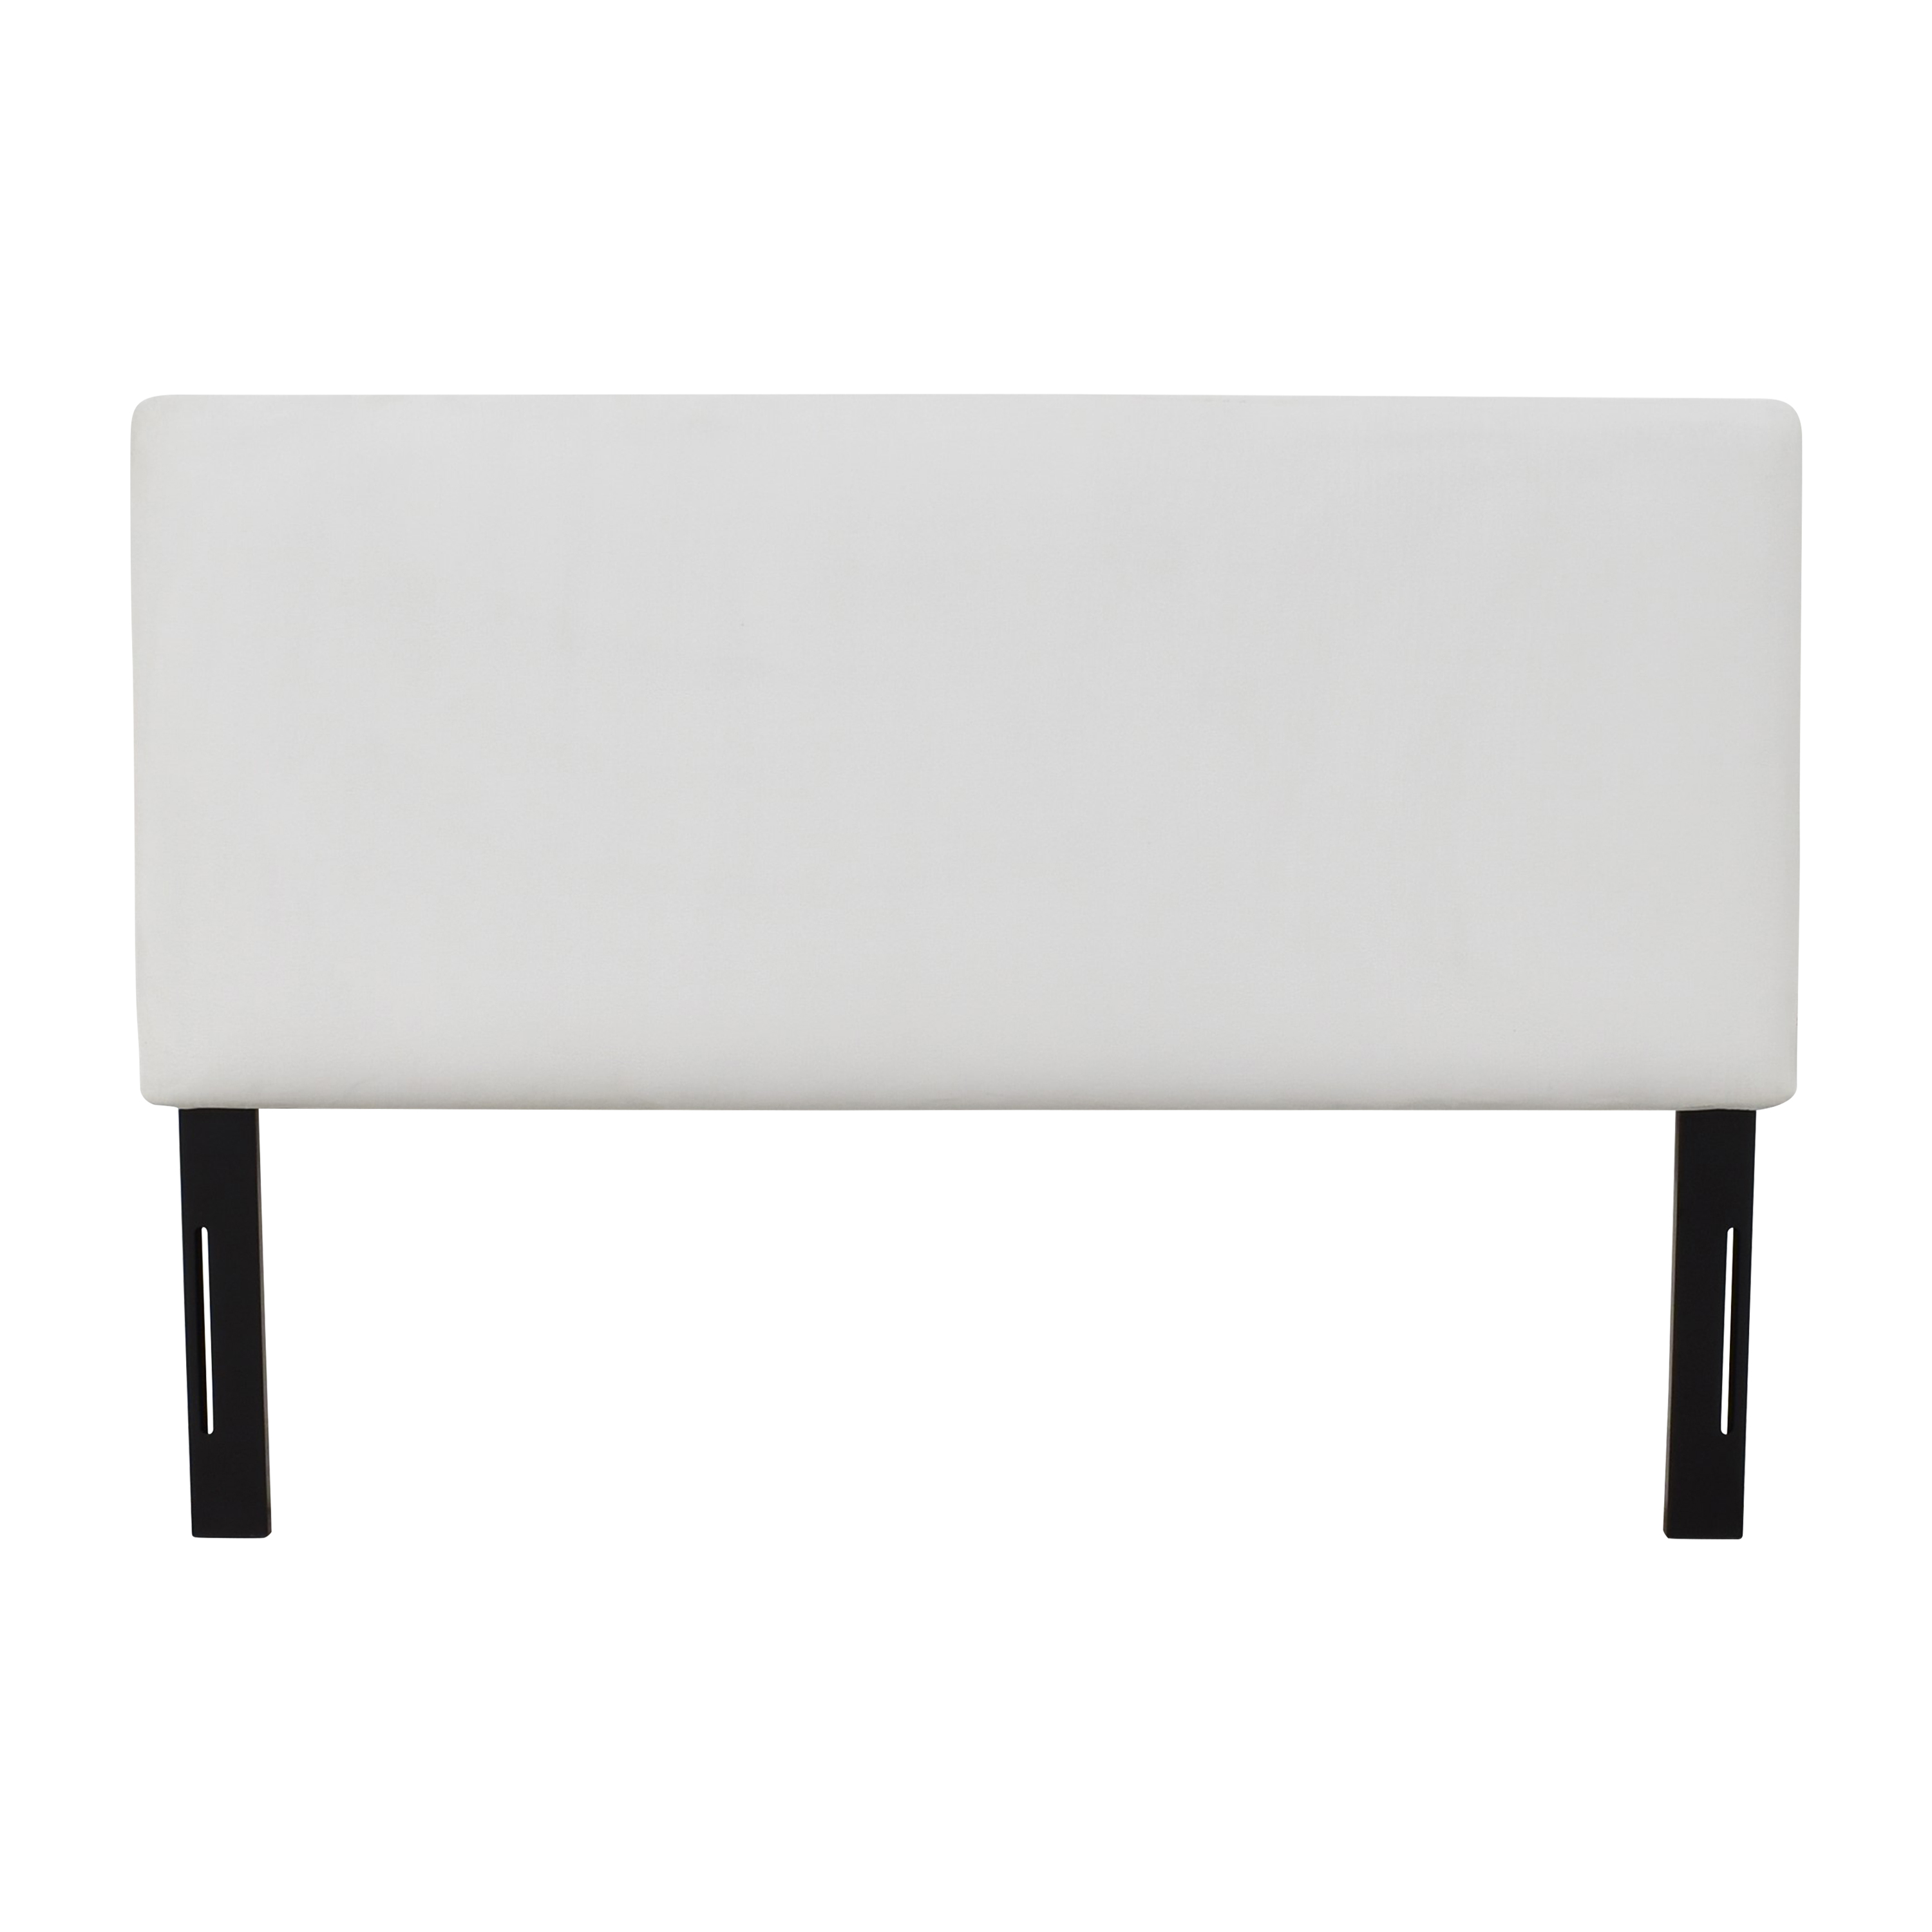 shop The Inside The Inside Square Back Queen Headboard online